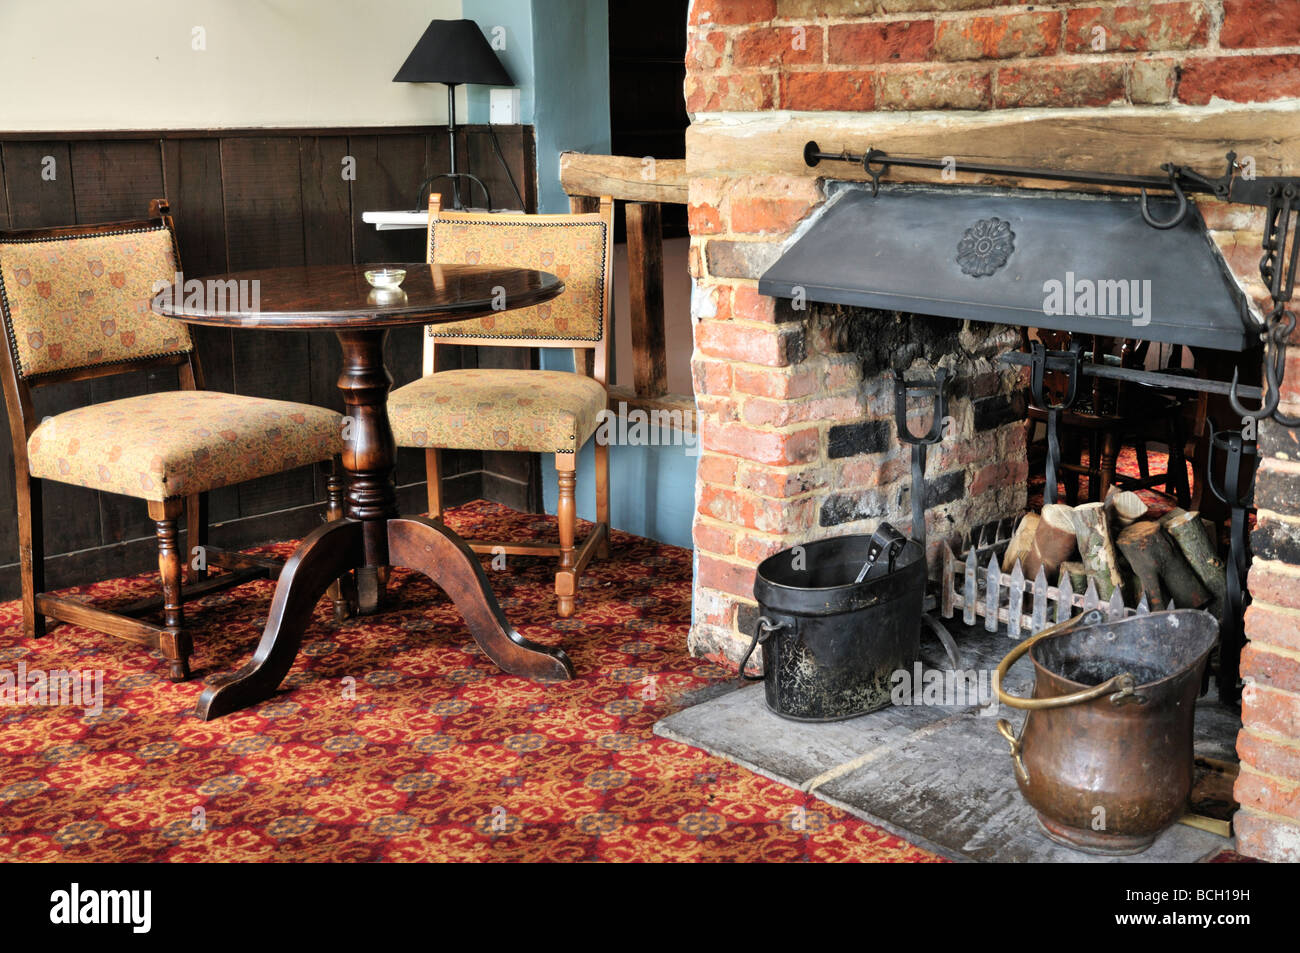 The Red Lyon Pub Restaurant, Hurley, Berkshire, UK - Stock Image